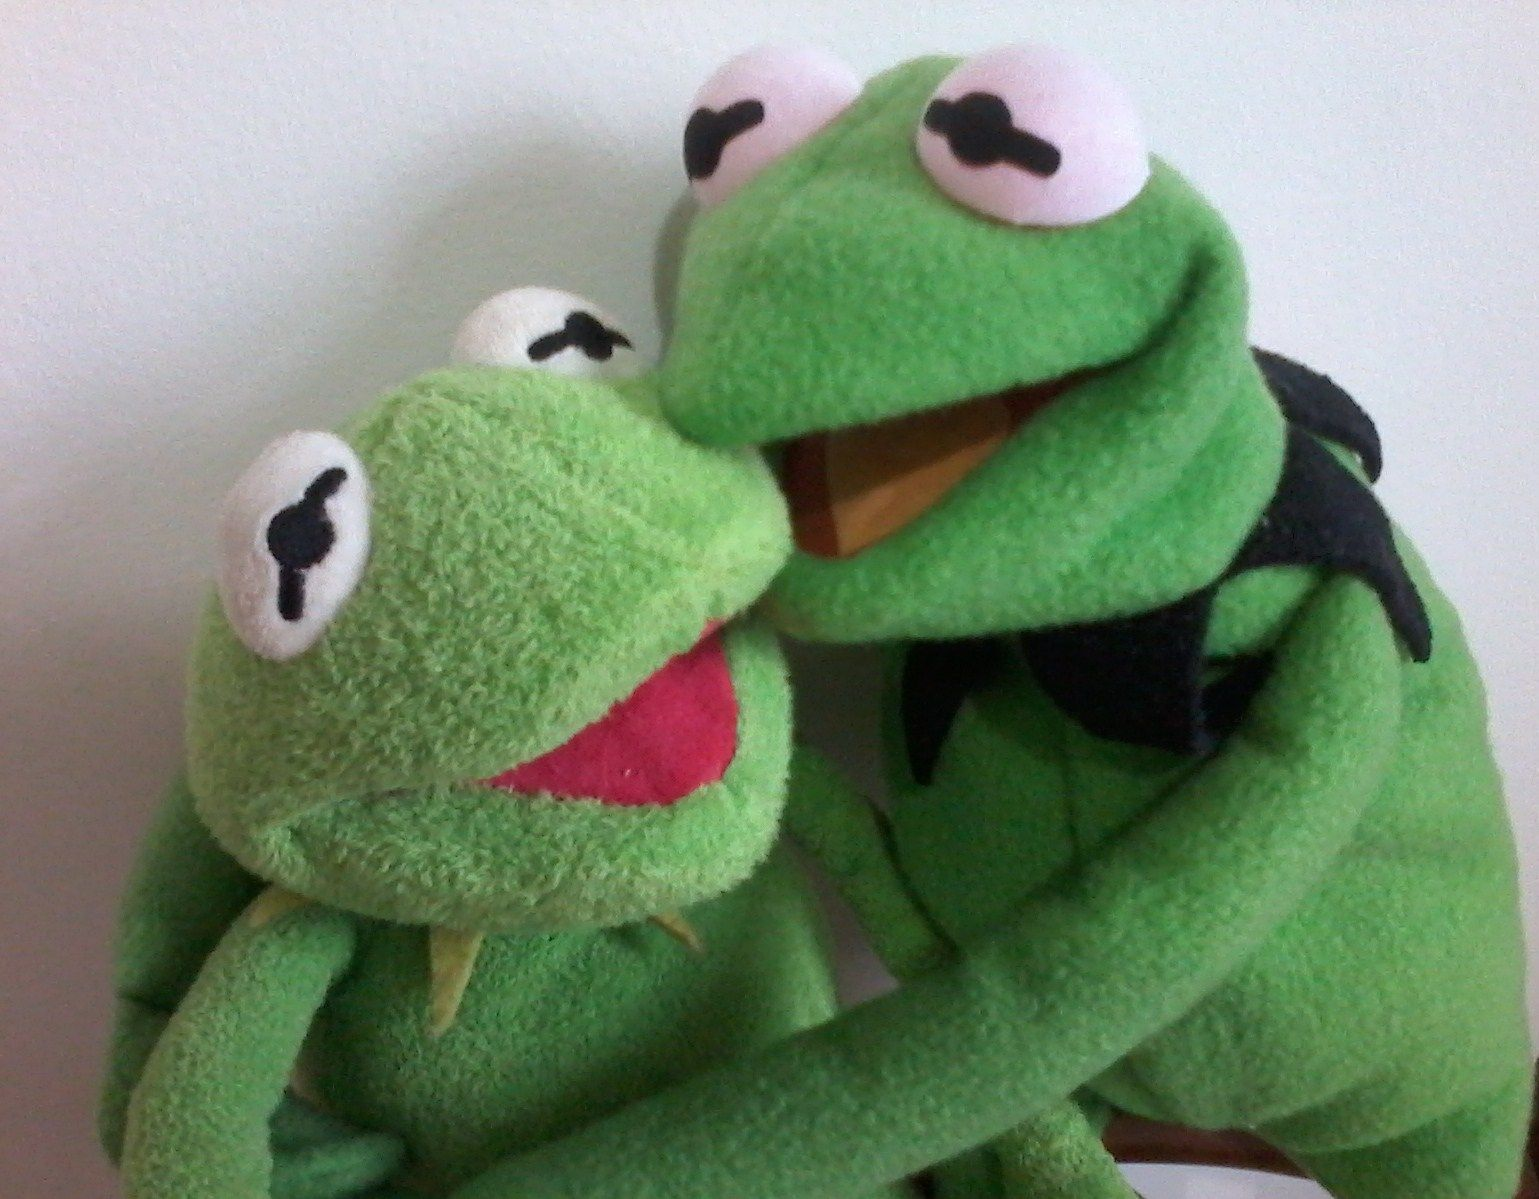 Funny Kermit The Frog: Kermit And His Friend Kermit